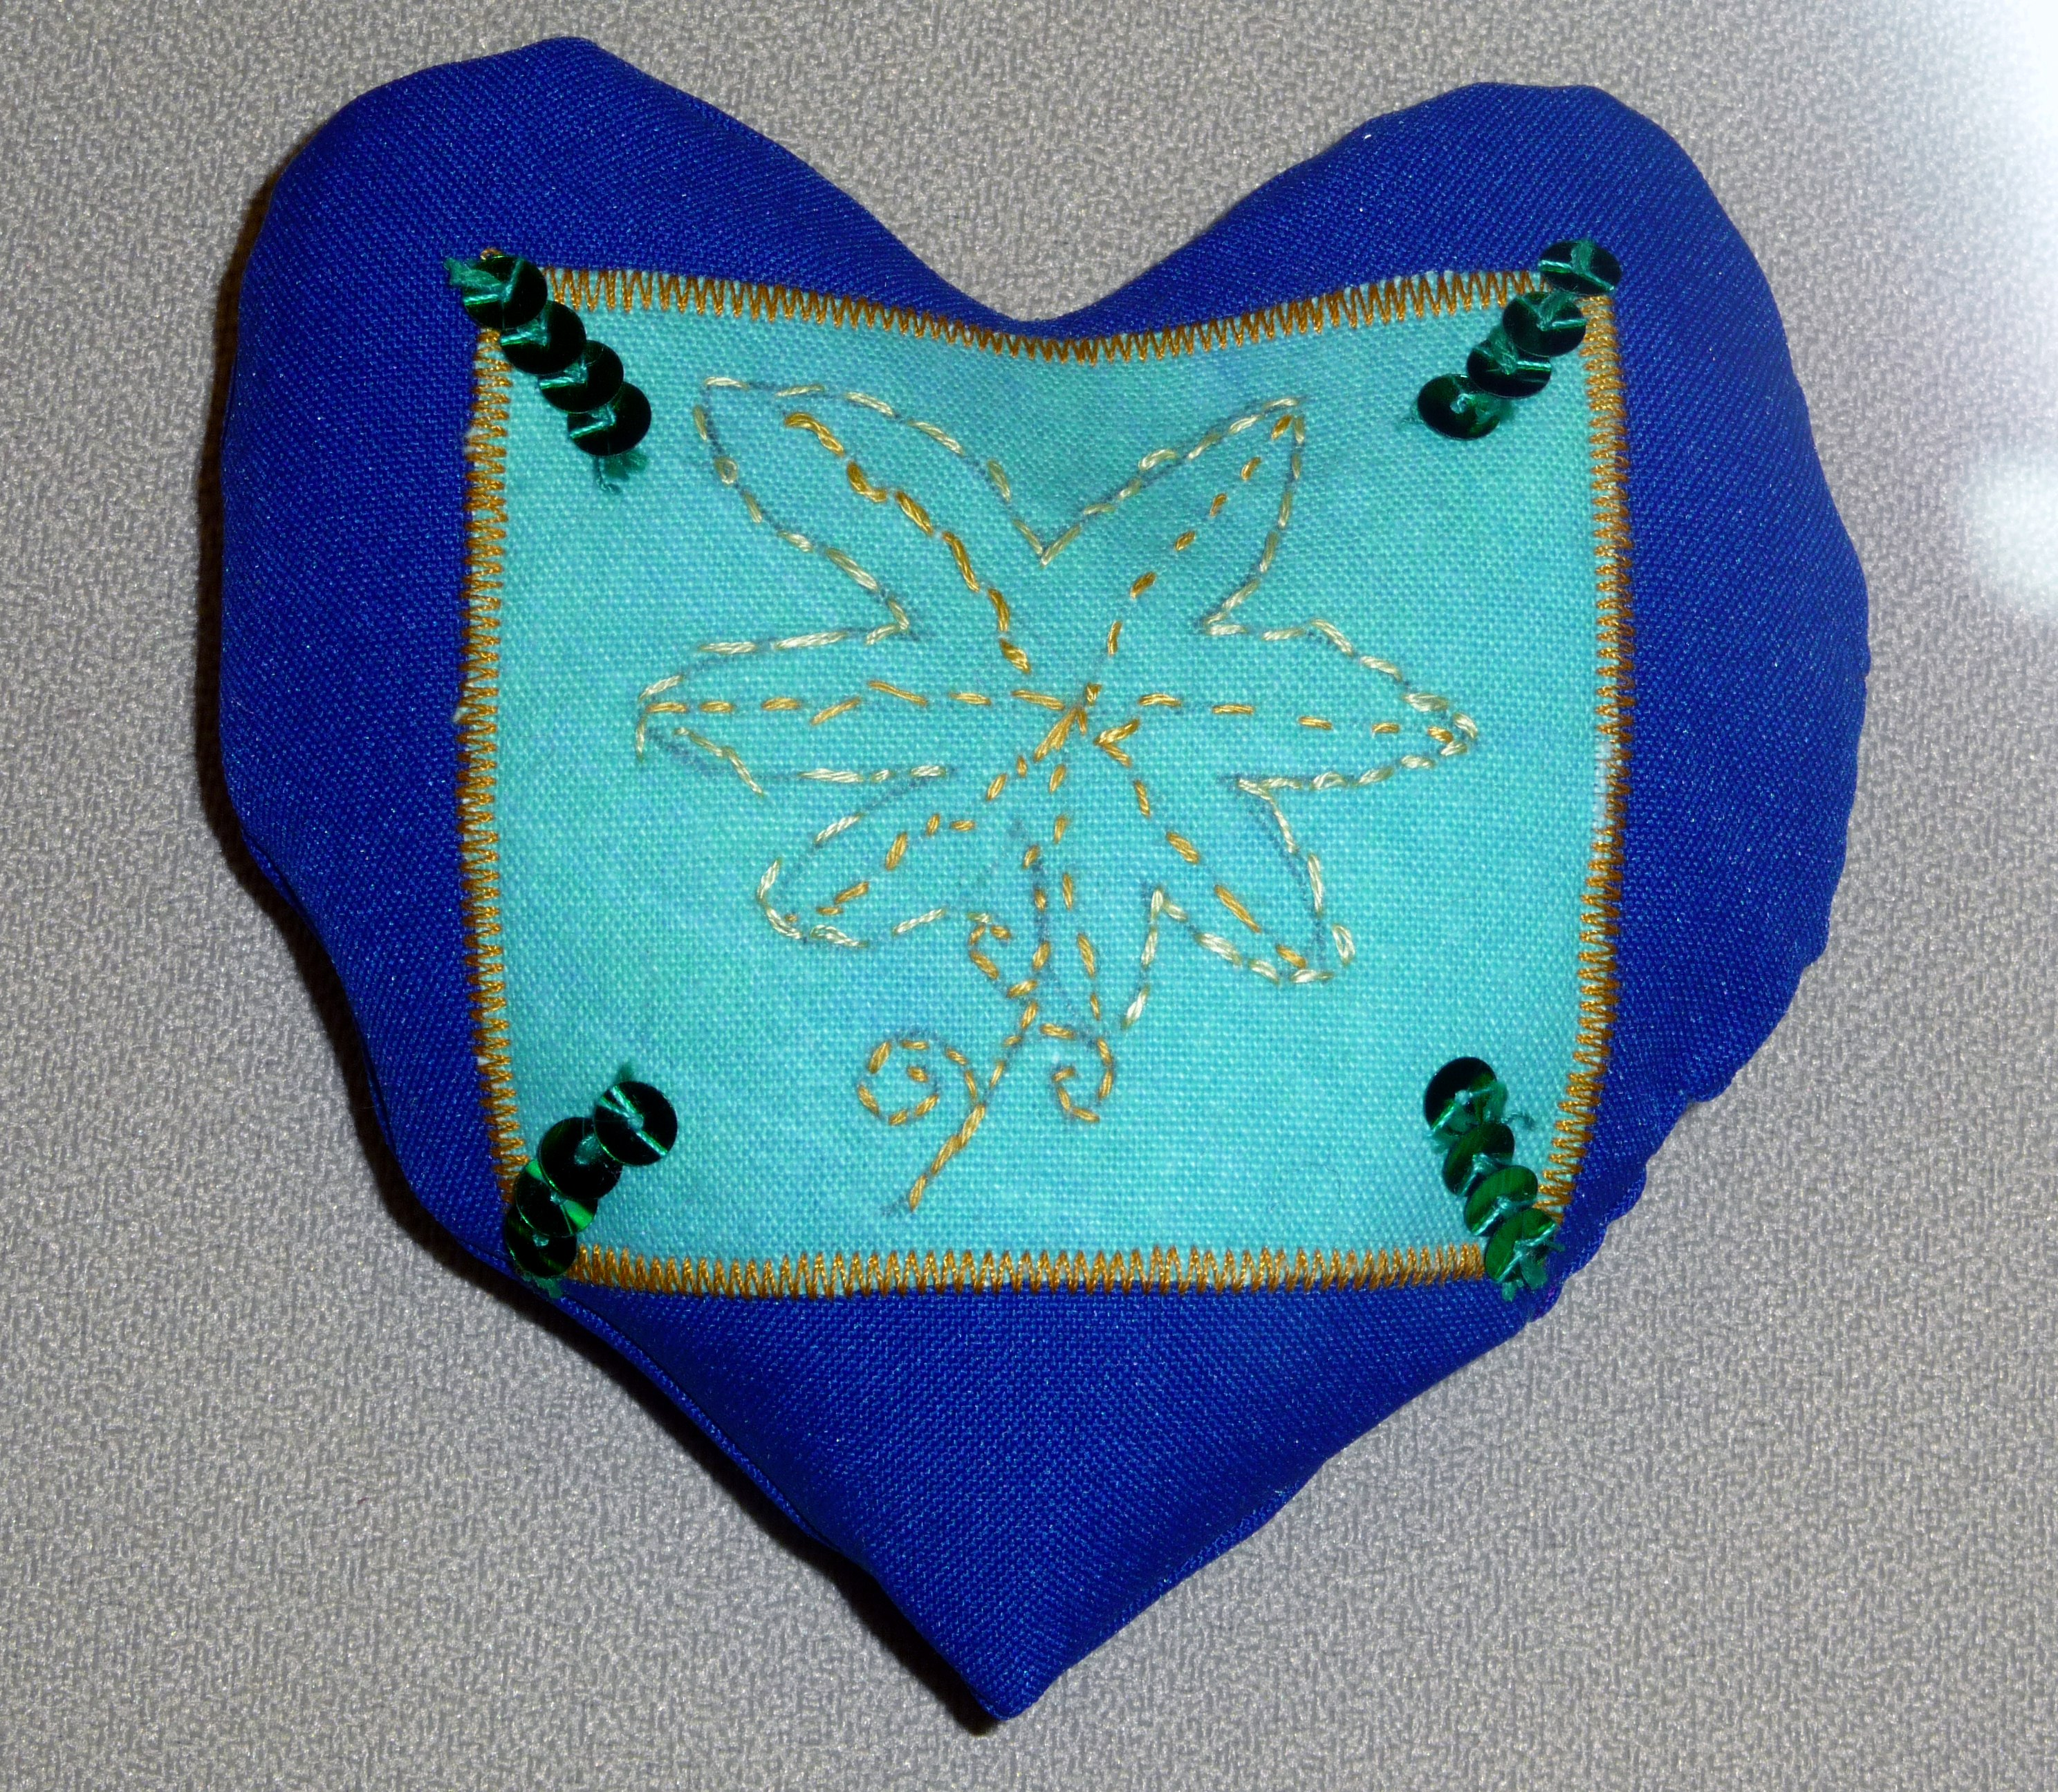 pincushion to commemorate World War 1 made by Annaleise, a Merseyside Young Embroiderer